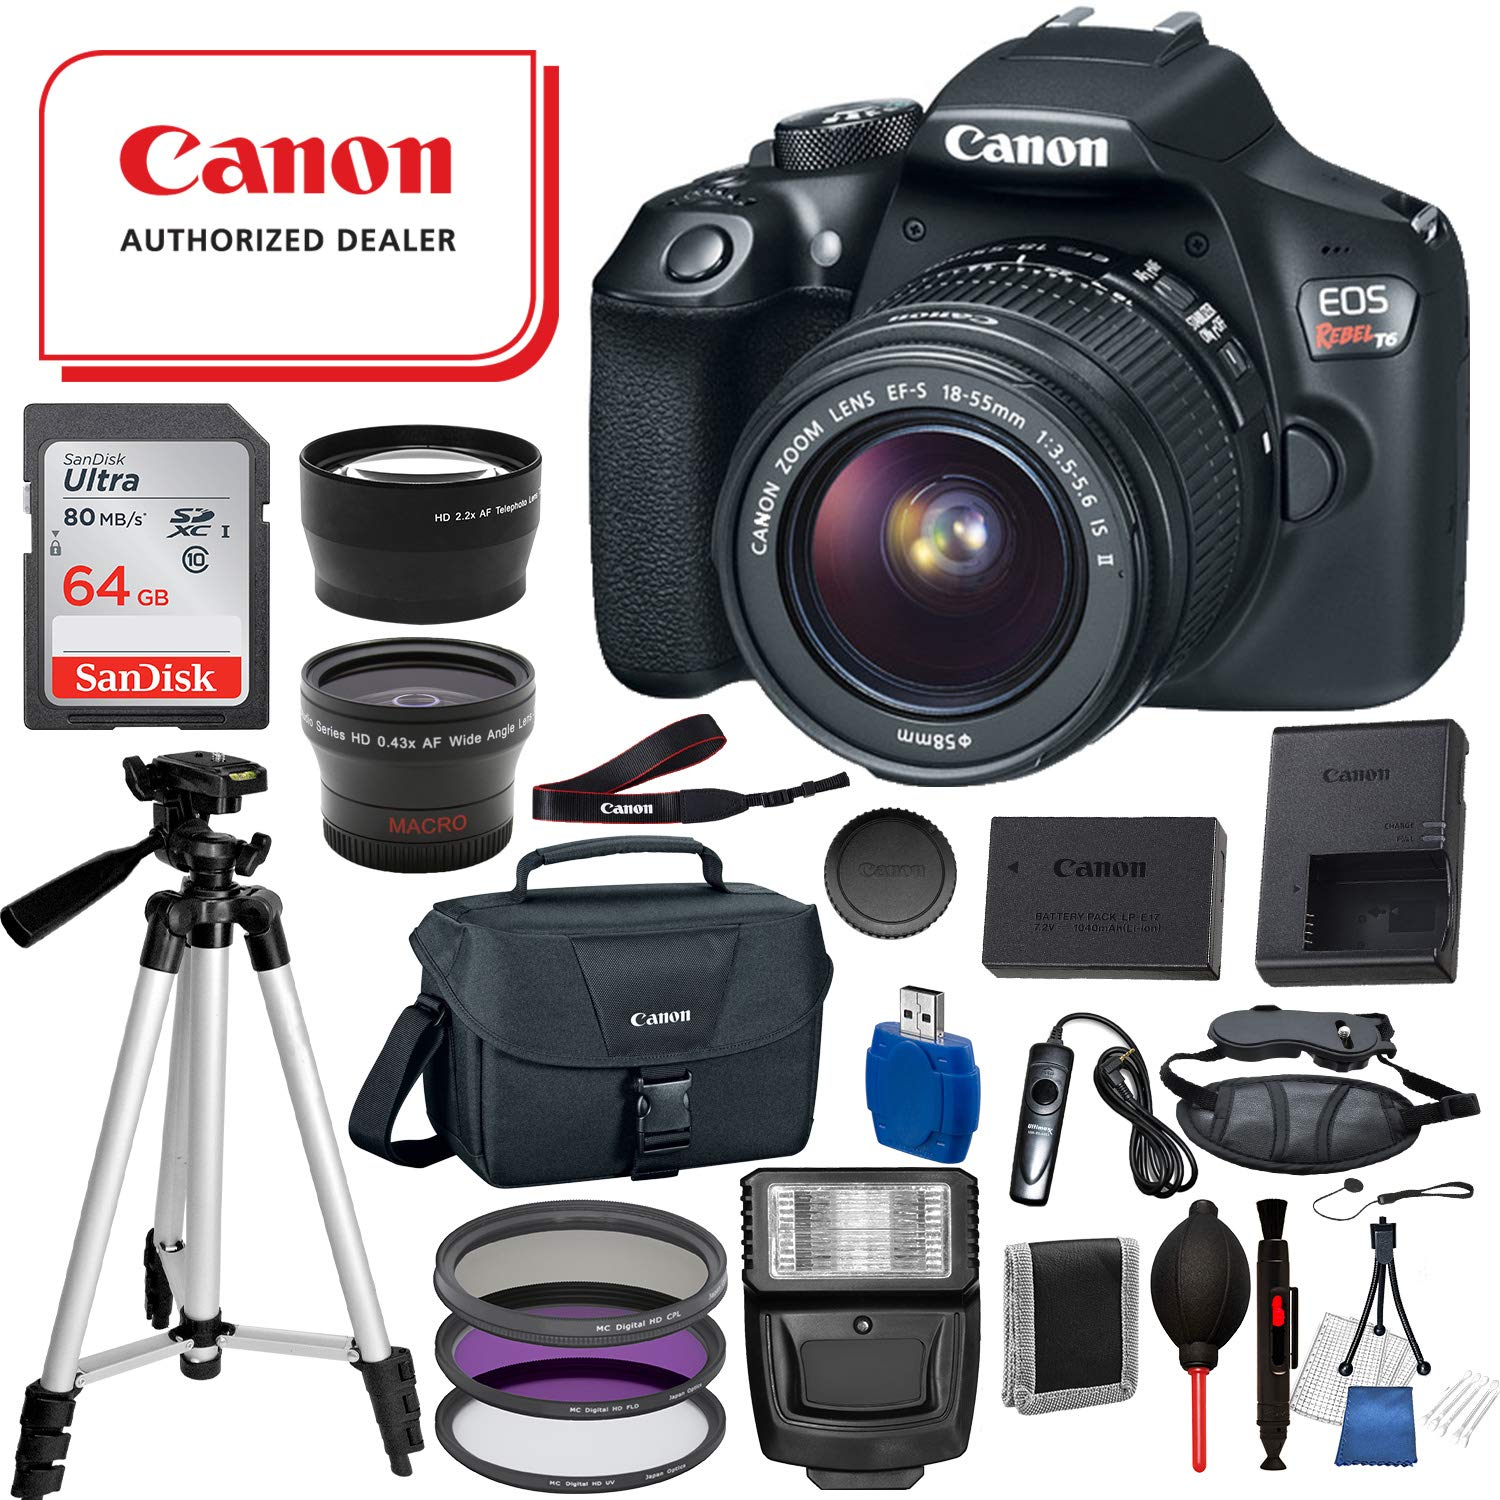 Canon EOS Rebel T6 Digital SLR Camera with EF-S 18-55mm IS II USA (Black) 19PC Professional Bundle